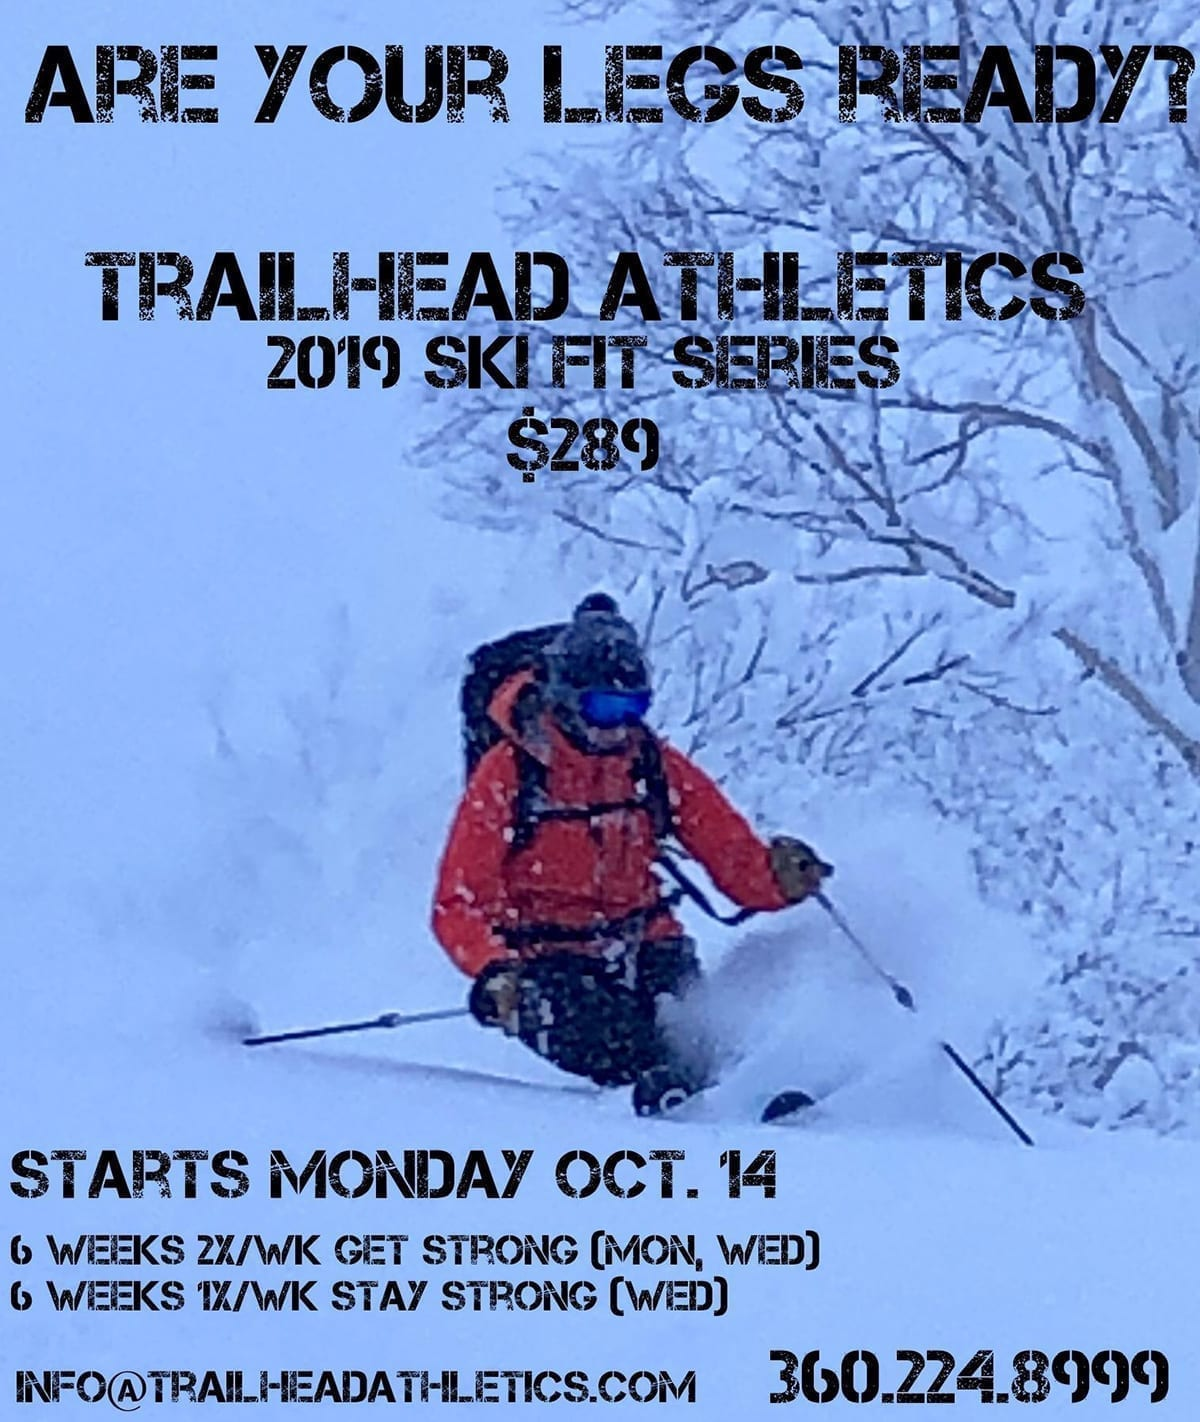 bellingham-ski-season-conditioning-and-training